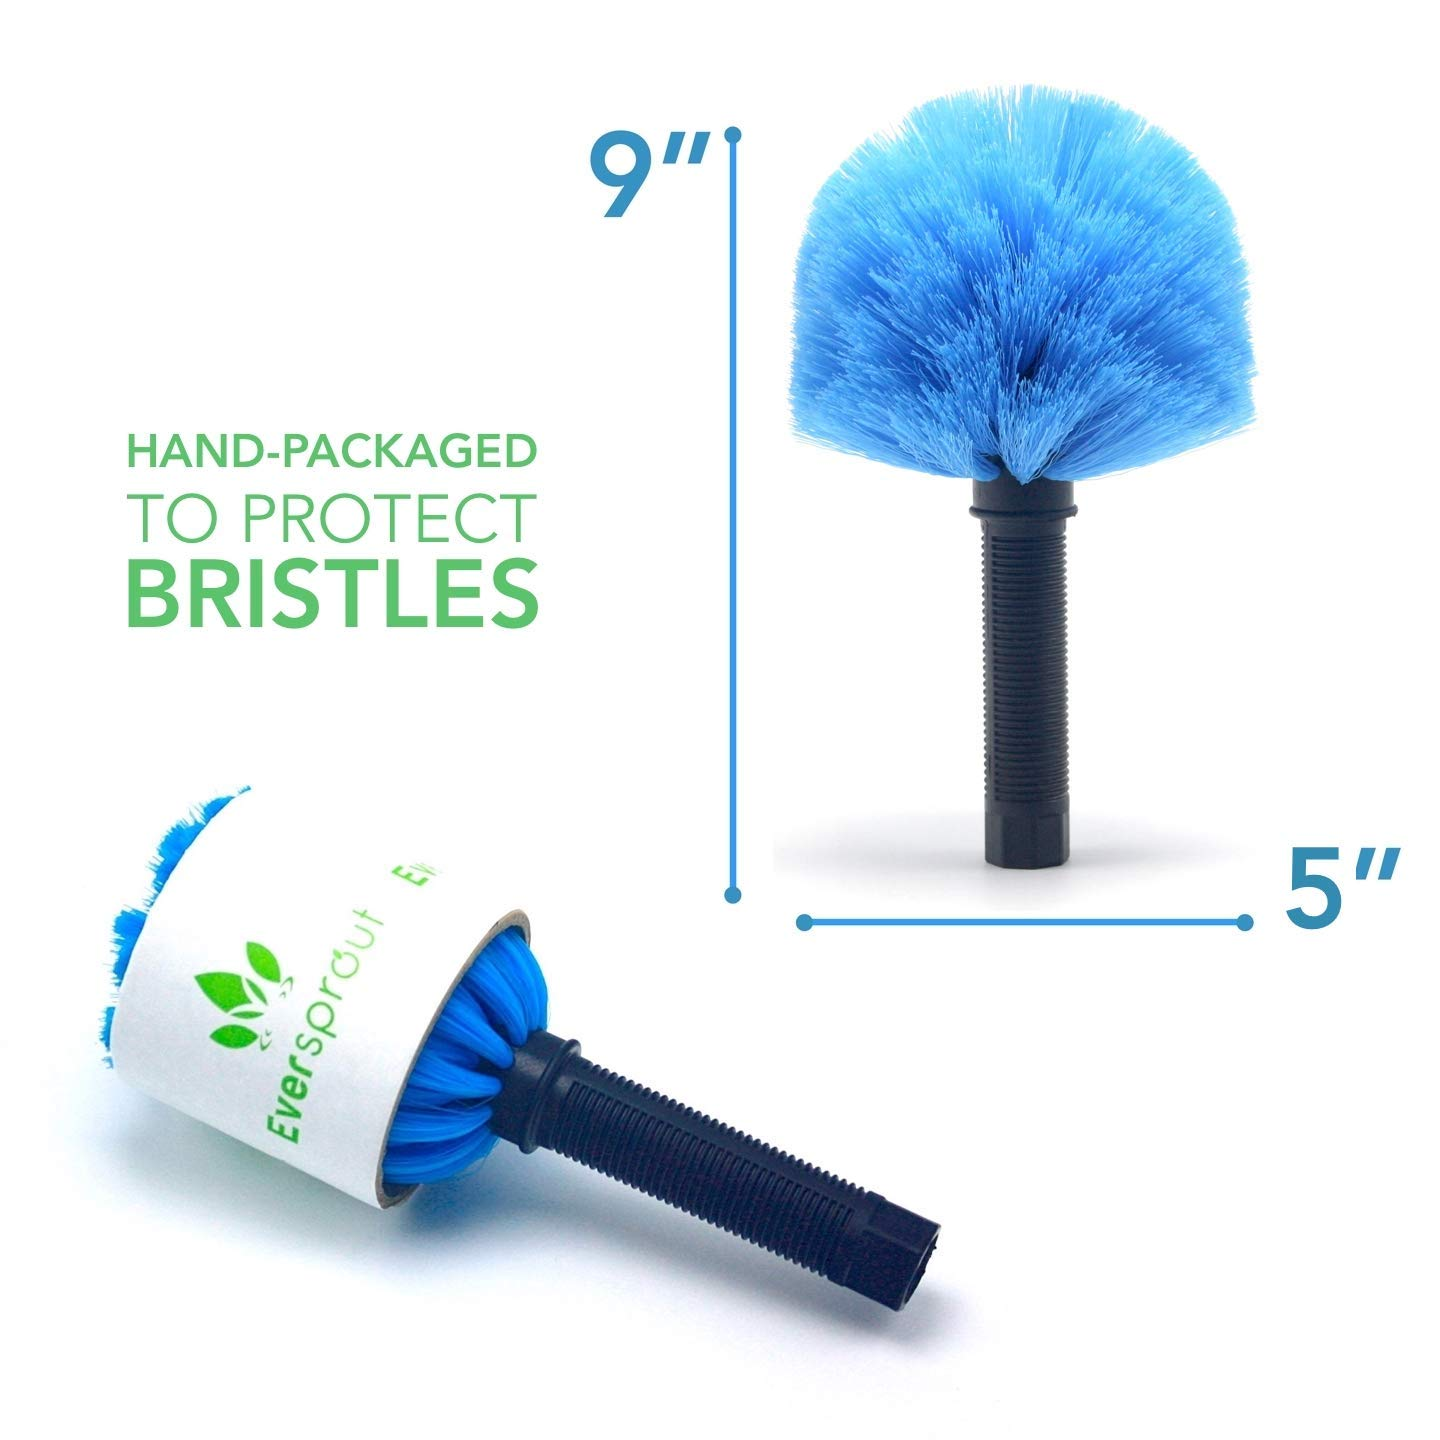 EVERSPROUT 4-Pack Duster Squeegee Kit | Swivel Squeegee, Hand-Packaged Cobweb Duster, Microfiber Feather Duster, Flexible Ceiling Fan Duster | Twists on Standard 3/4-inch ACME Threaded Poles (no pole) by EVERSPROUT